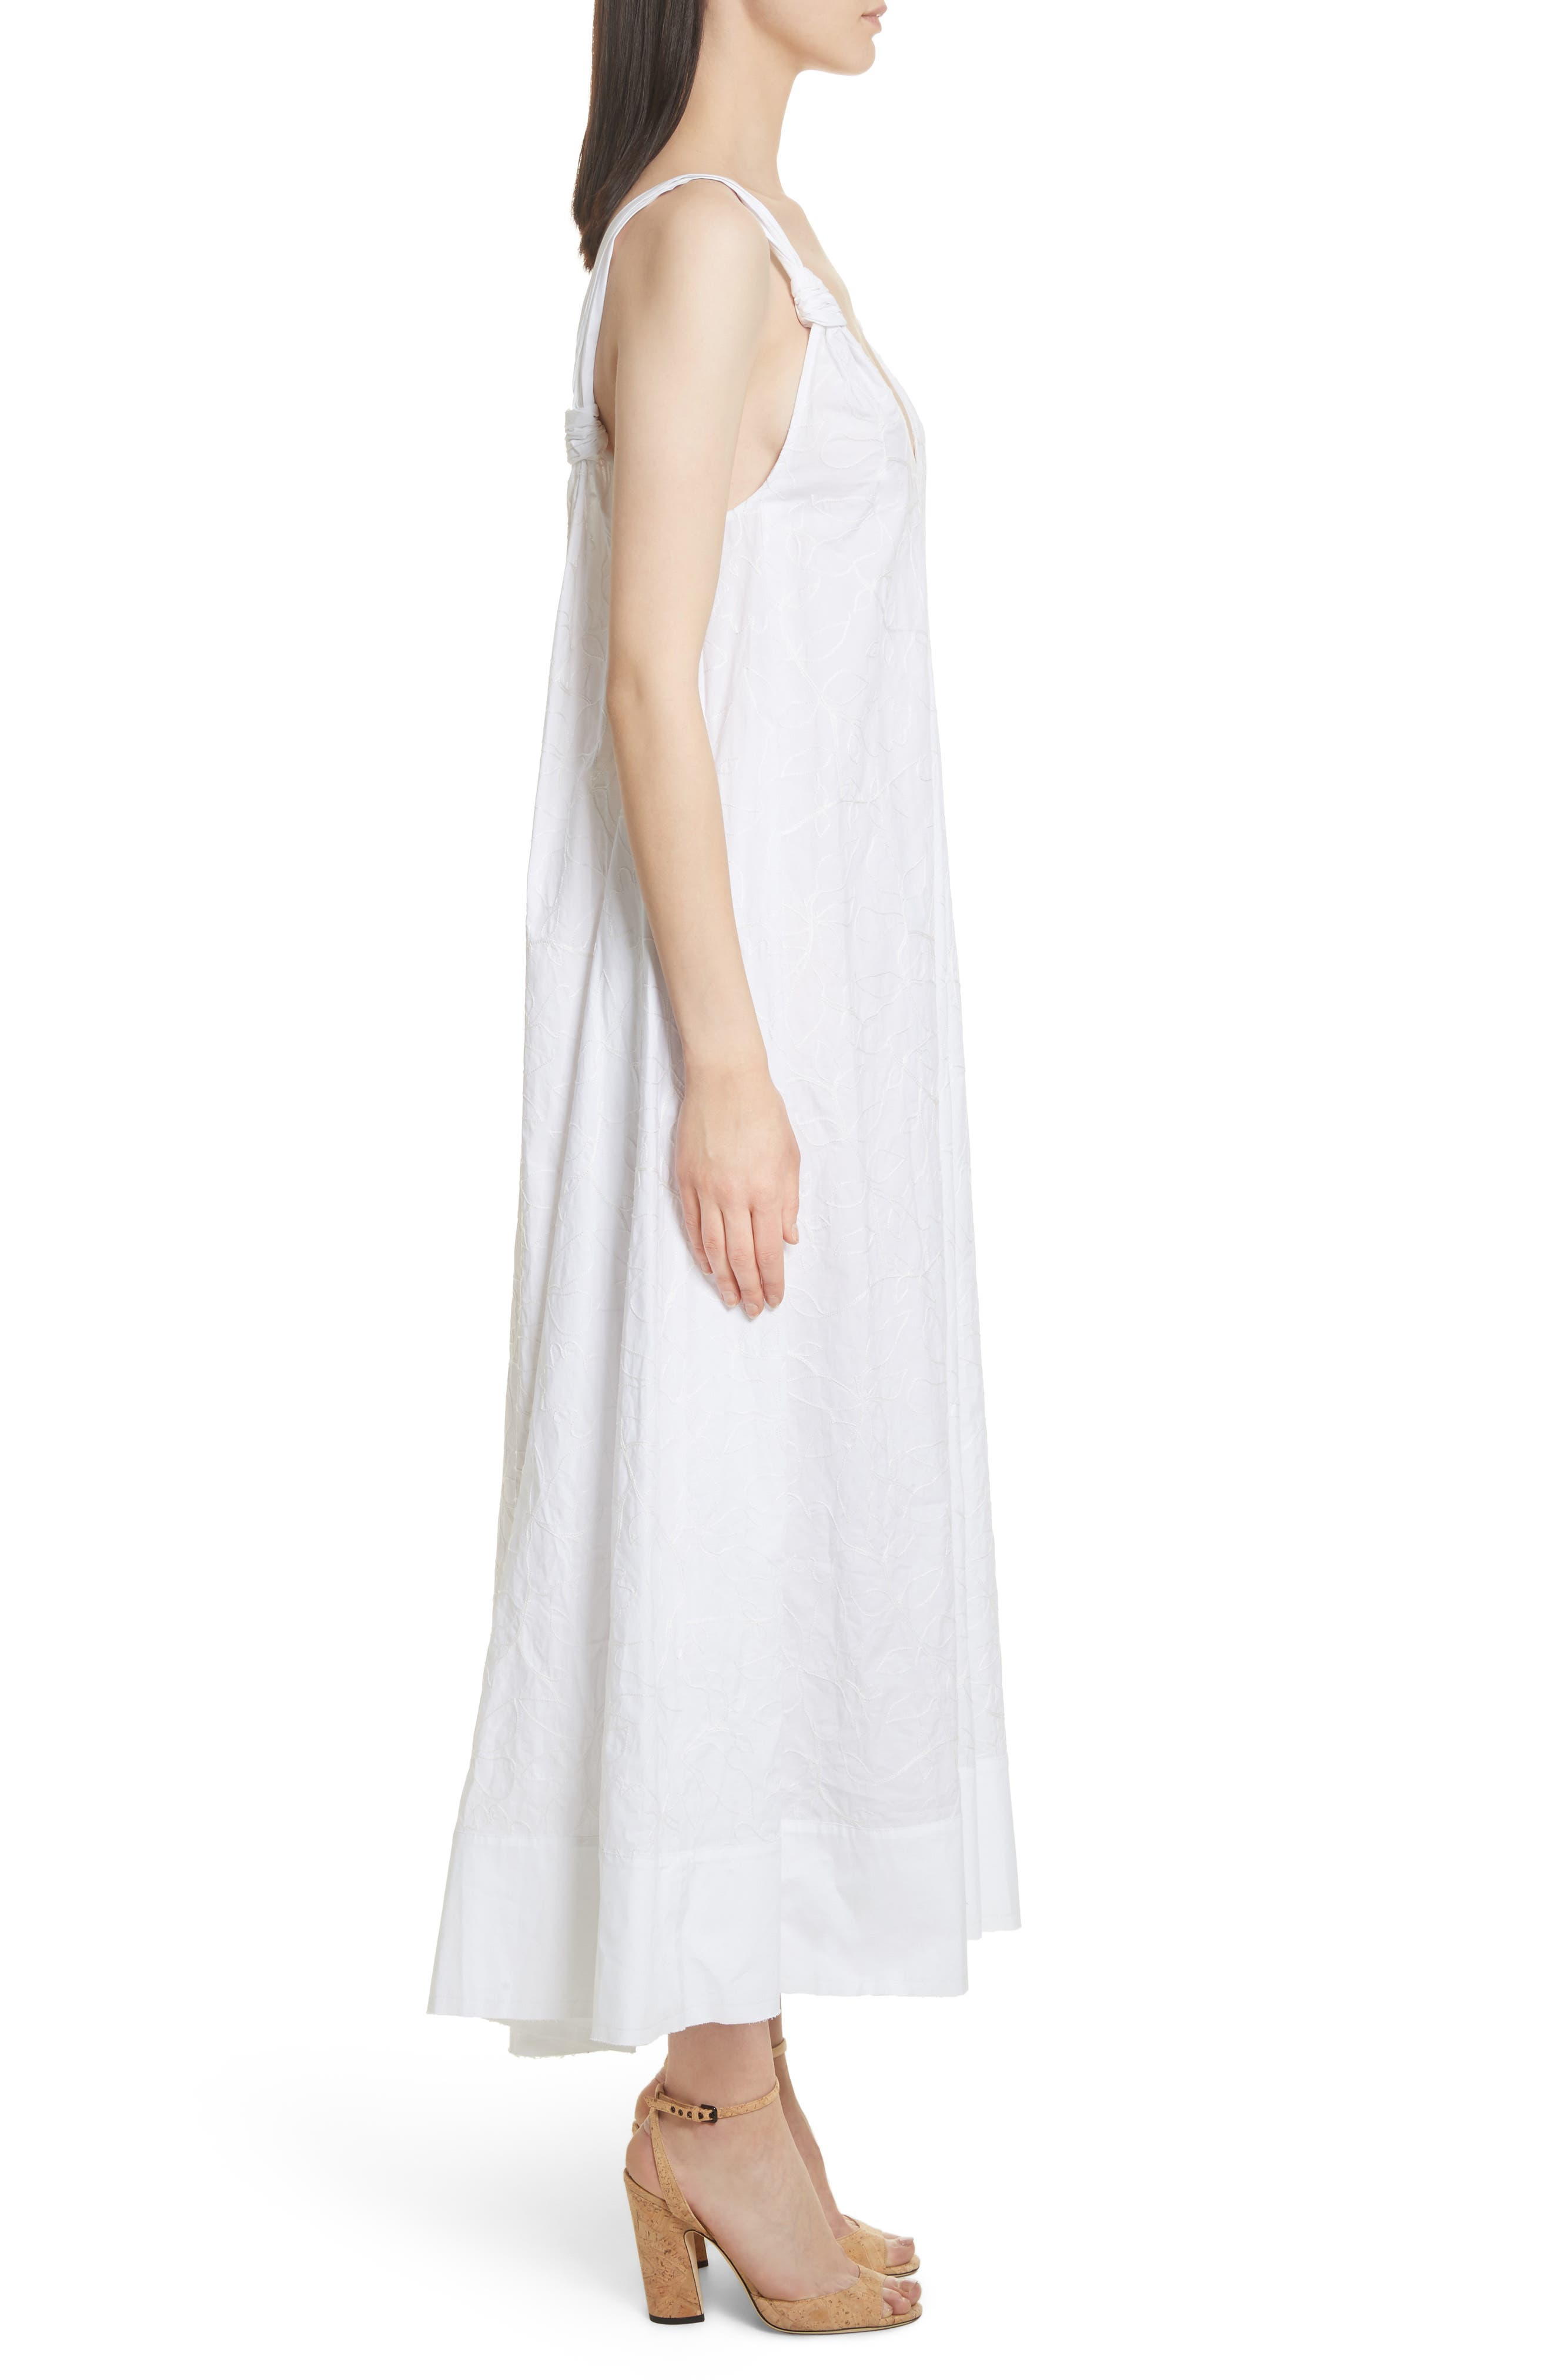 ELIZABETH AND JAMES,                             Denali Embroidered Maxi Dress,                             Alternate thumbnail 3, color,                             100